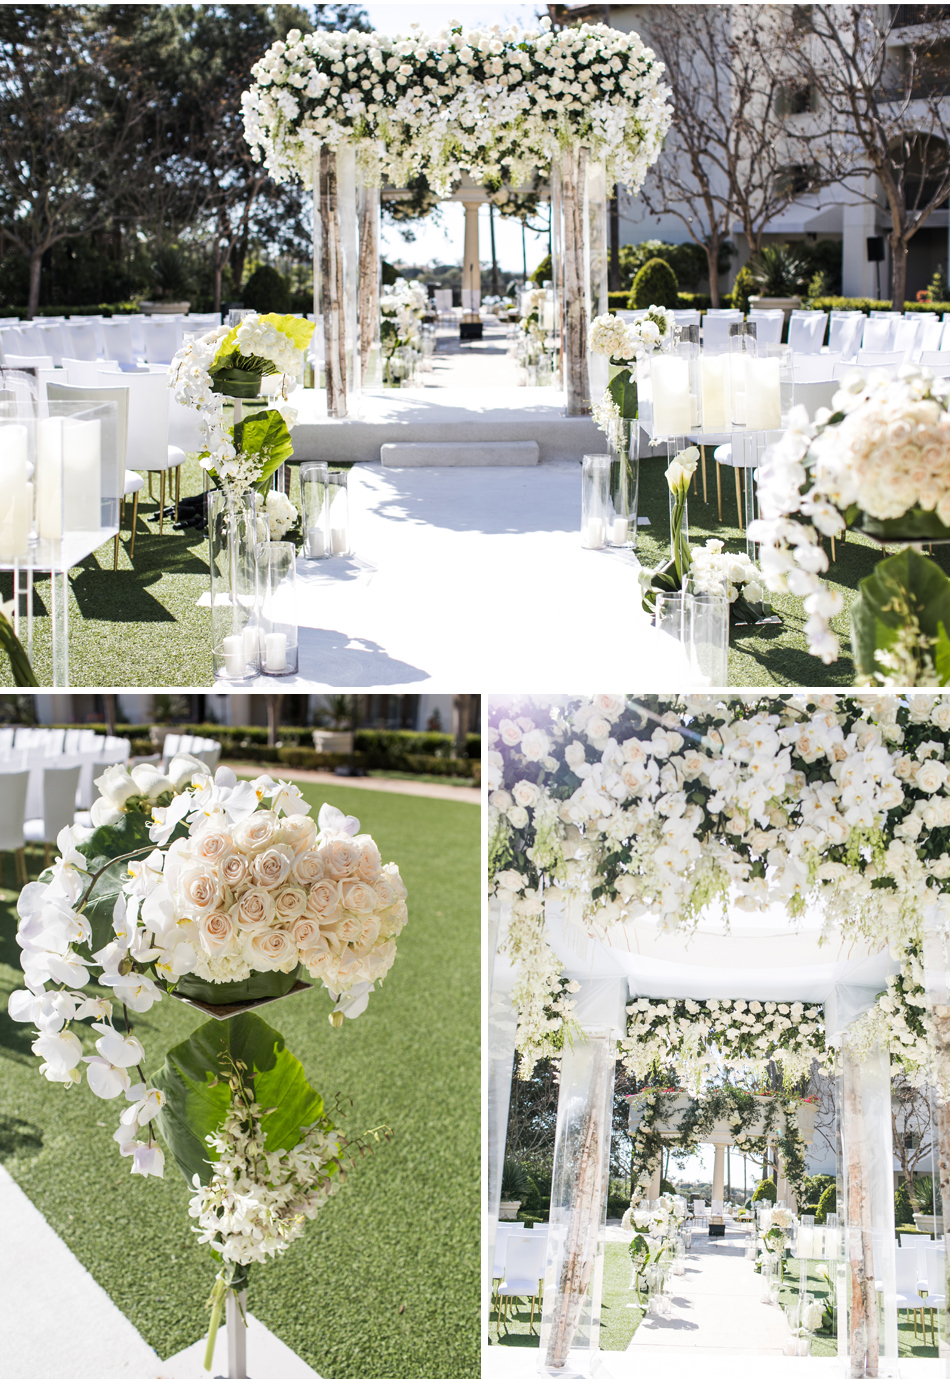 internationaleventcompany.com   International Event Company Los Angeles Wedding Planner and Designer   Weddings at The Monarch Beach Resort   Luxury Event Planners in Southern California _ (6).jpg